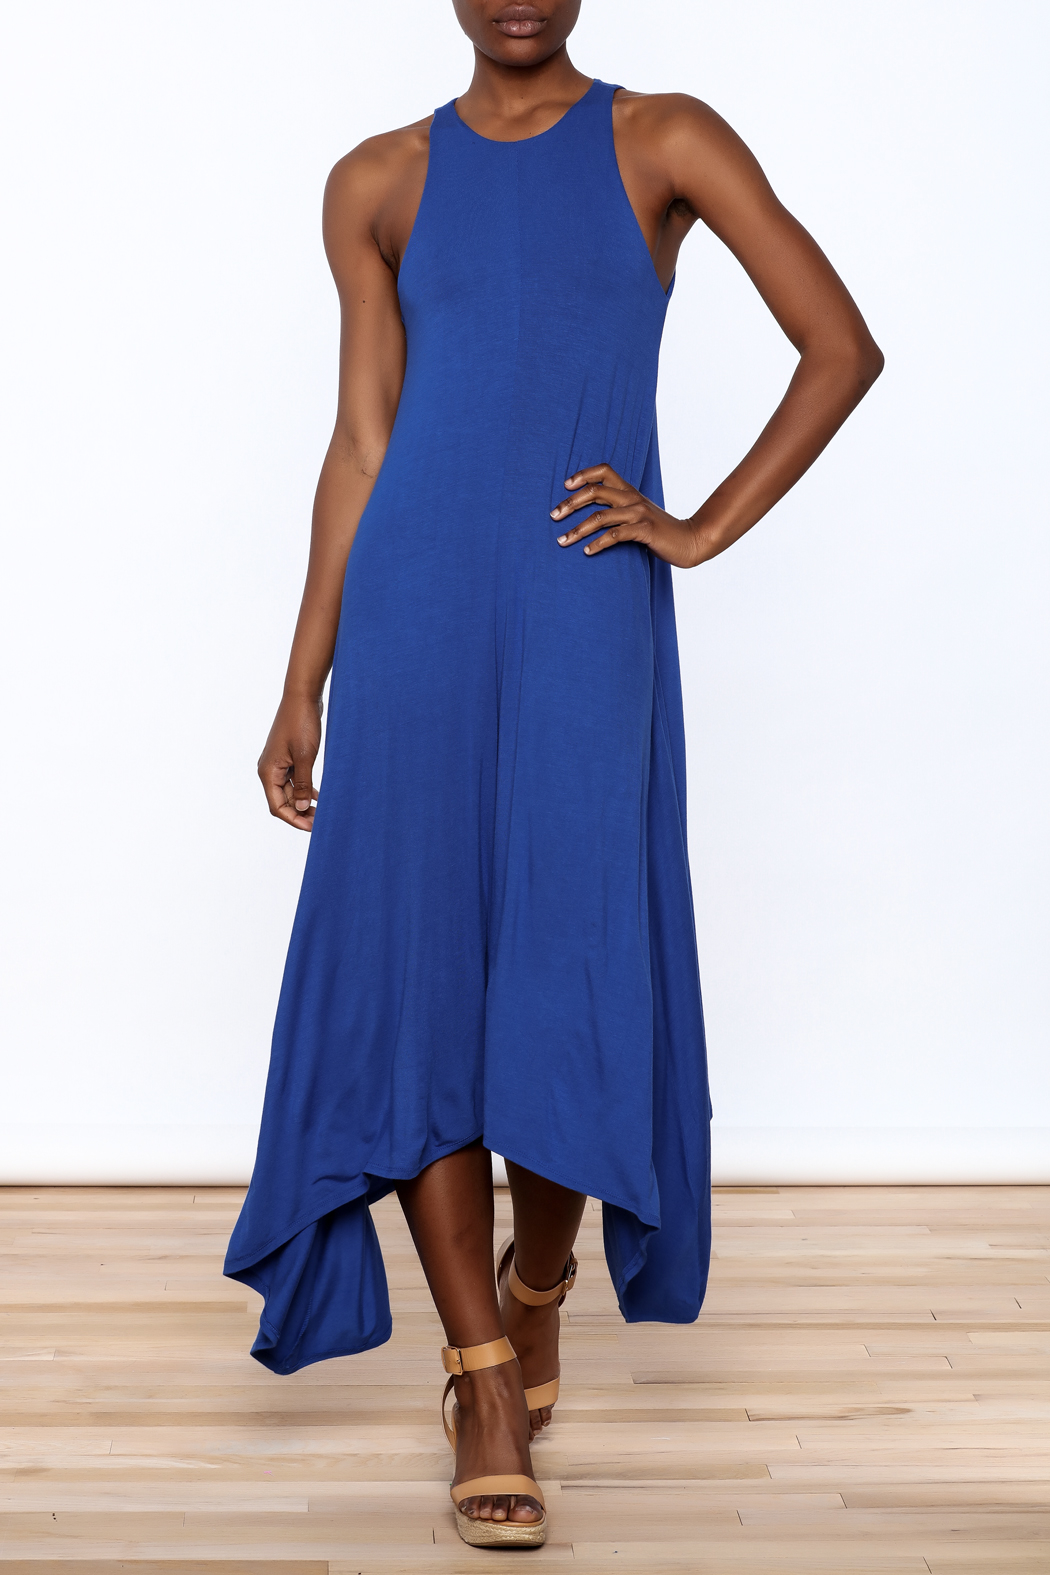 1 funky blue midi dress from california by yuni shoptiques